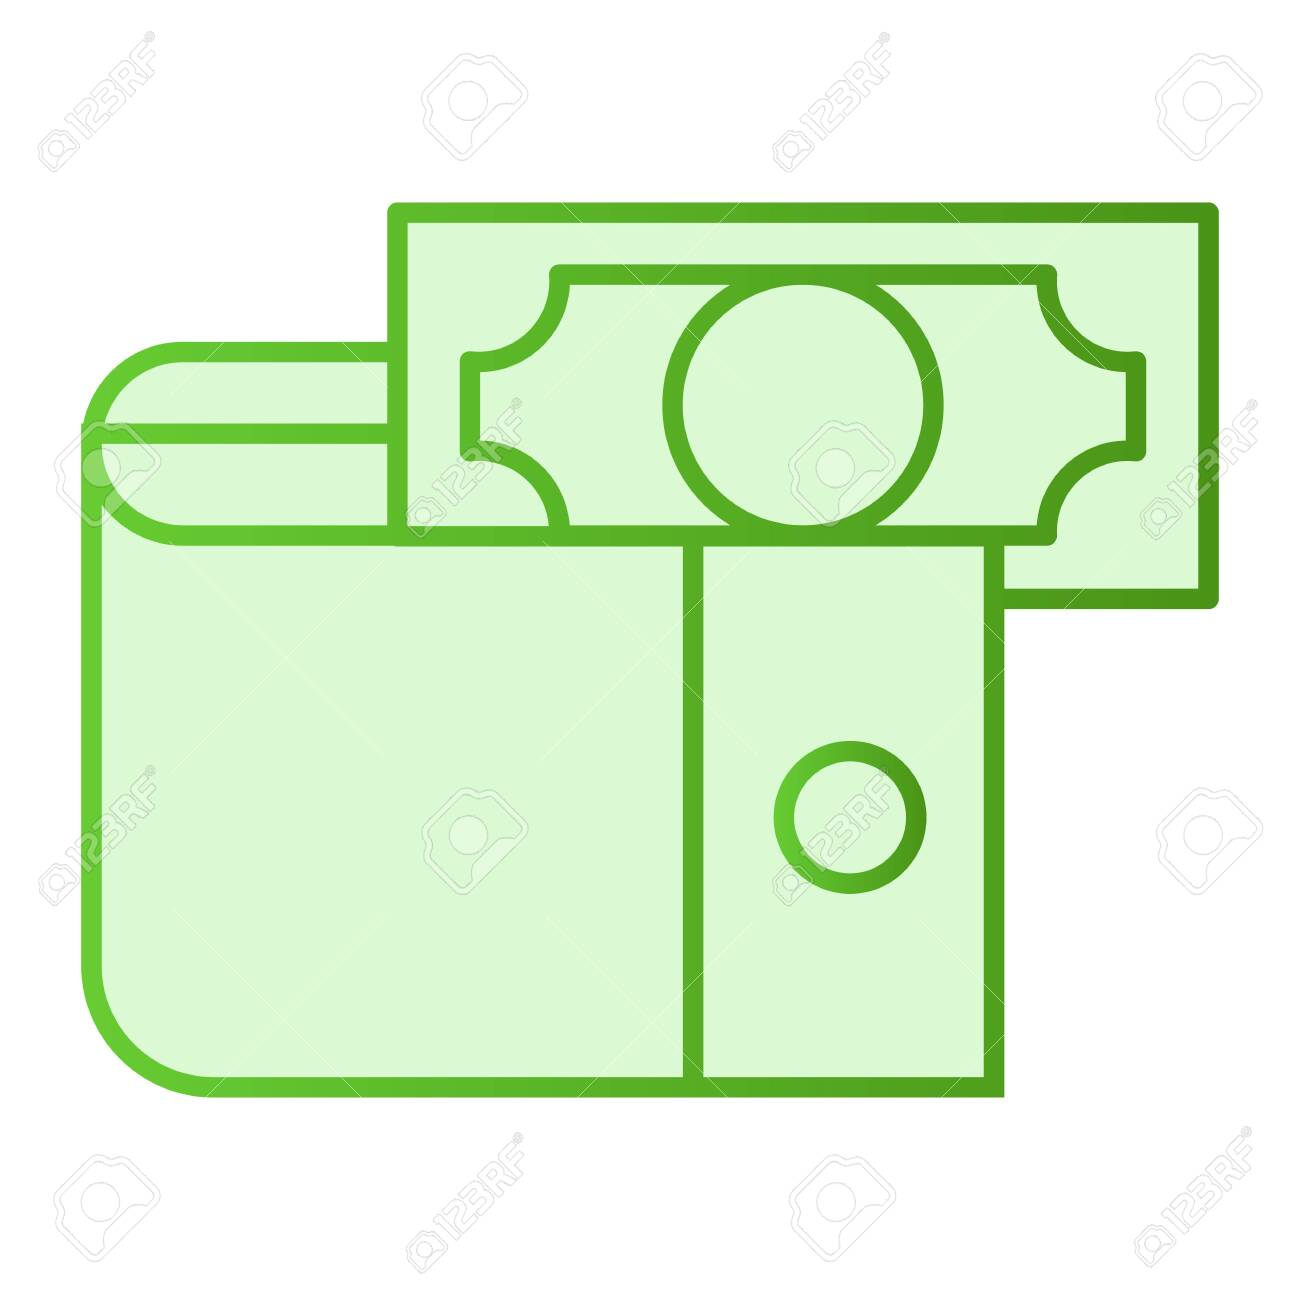 Wallet With Money Flat Icon Cash Green Icons In Trendy Flat Royalty Free Cliparts Vectors And Stock Illustration Image 120811335